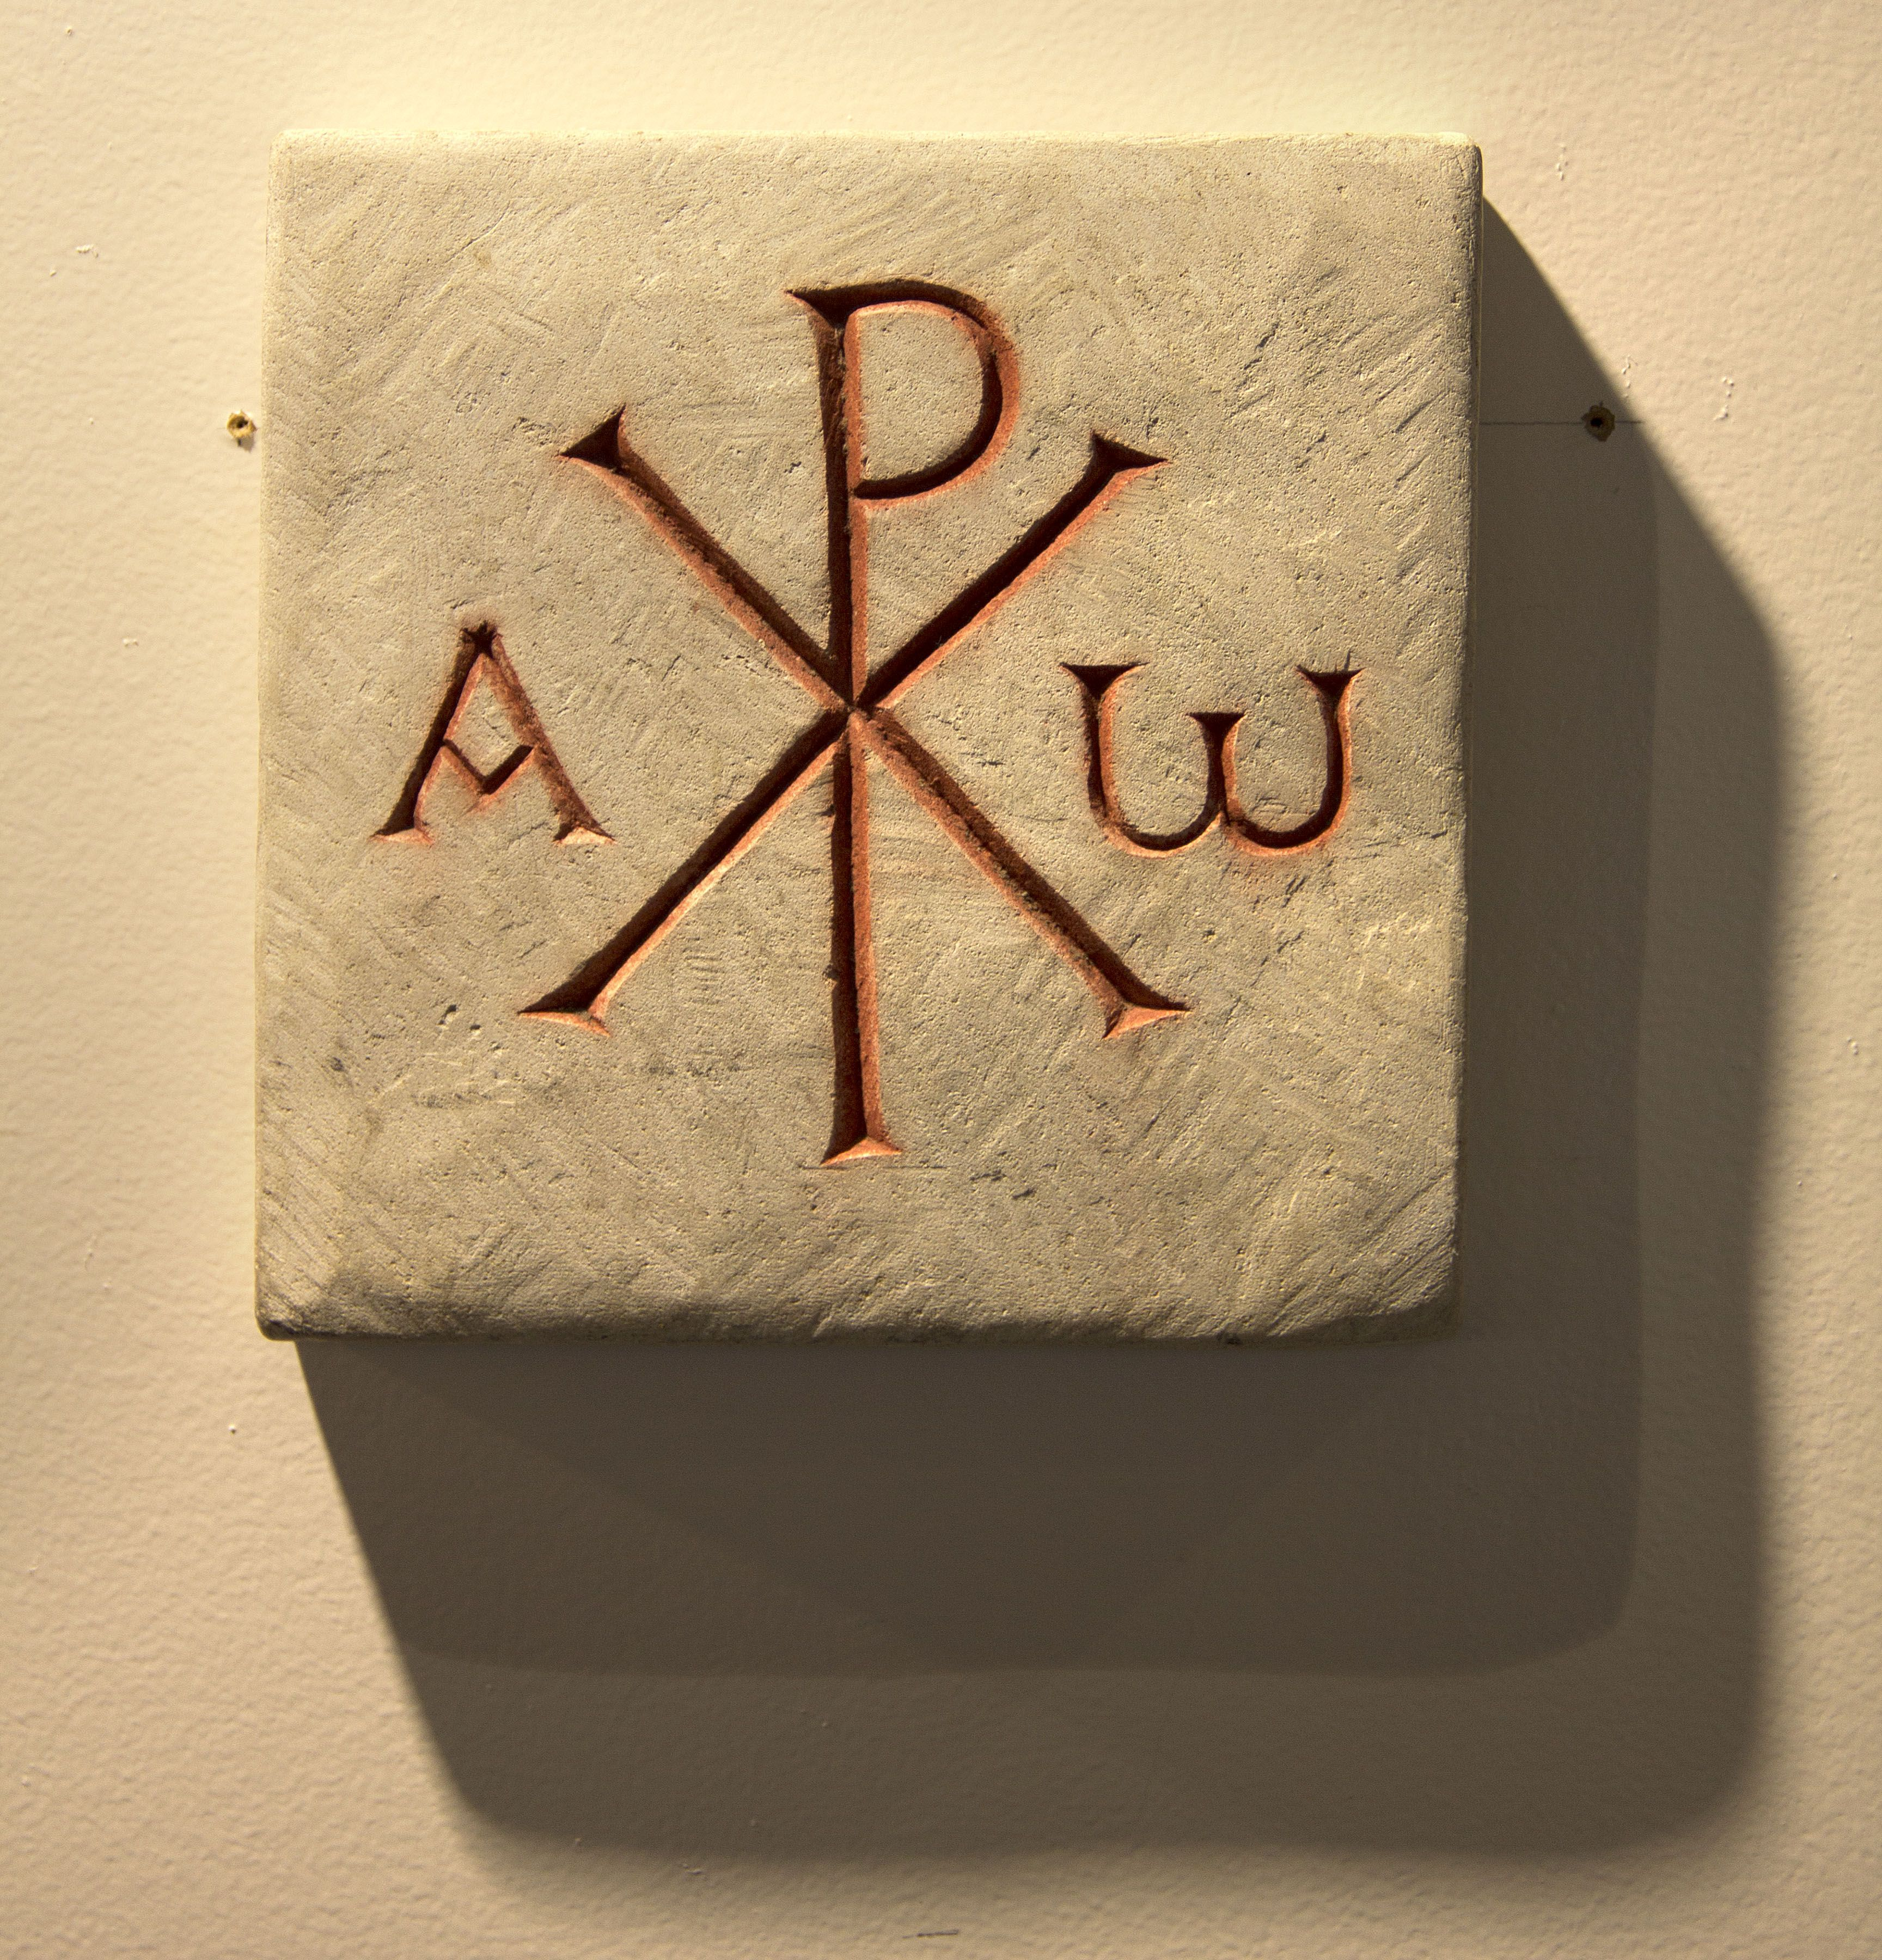 Chi rho alpha omega by ralph beyer photo c behrens chi rho alpha omega by ralph beyer photo c behrens buycottarizona